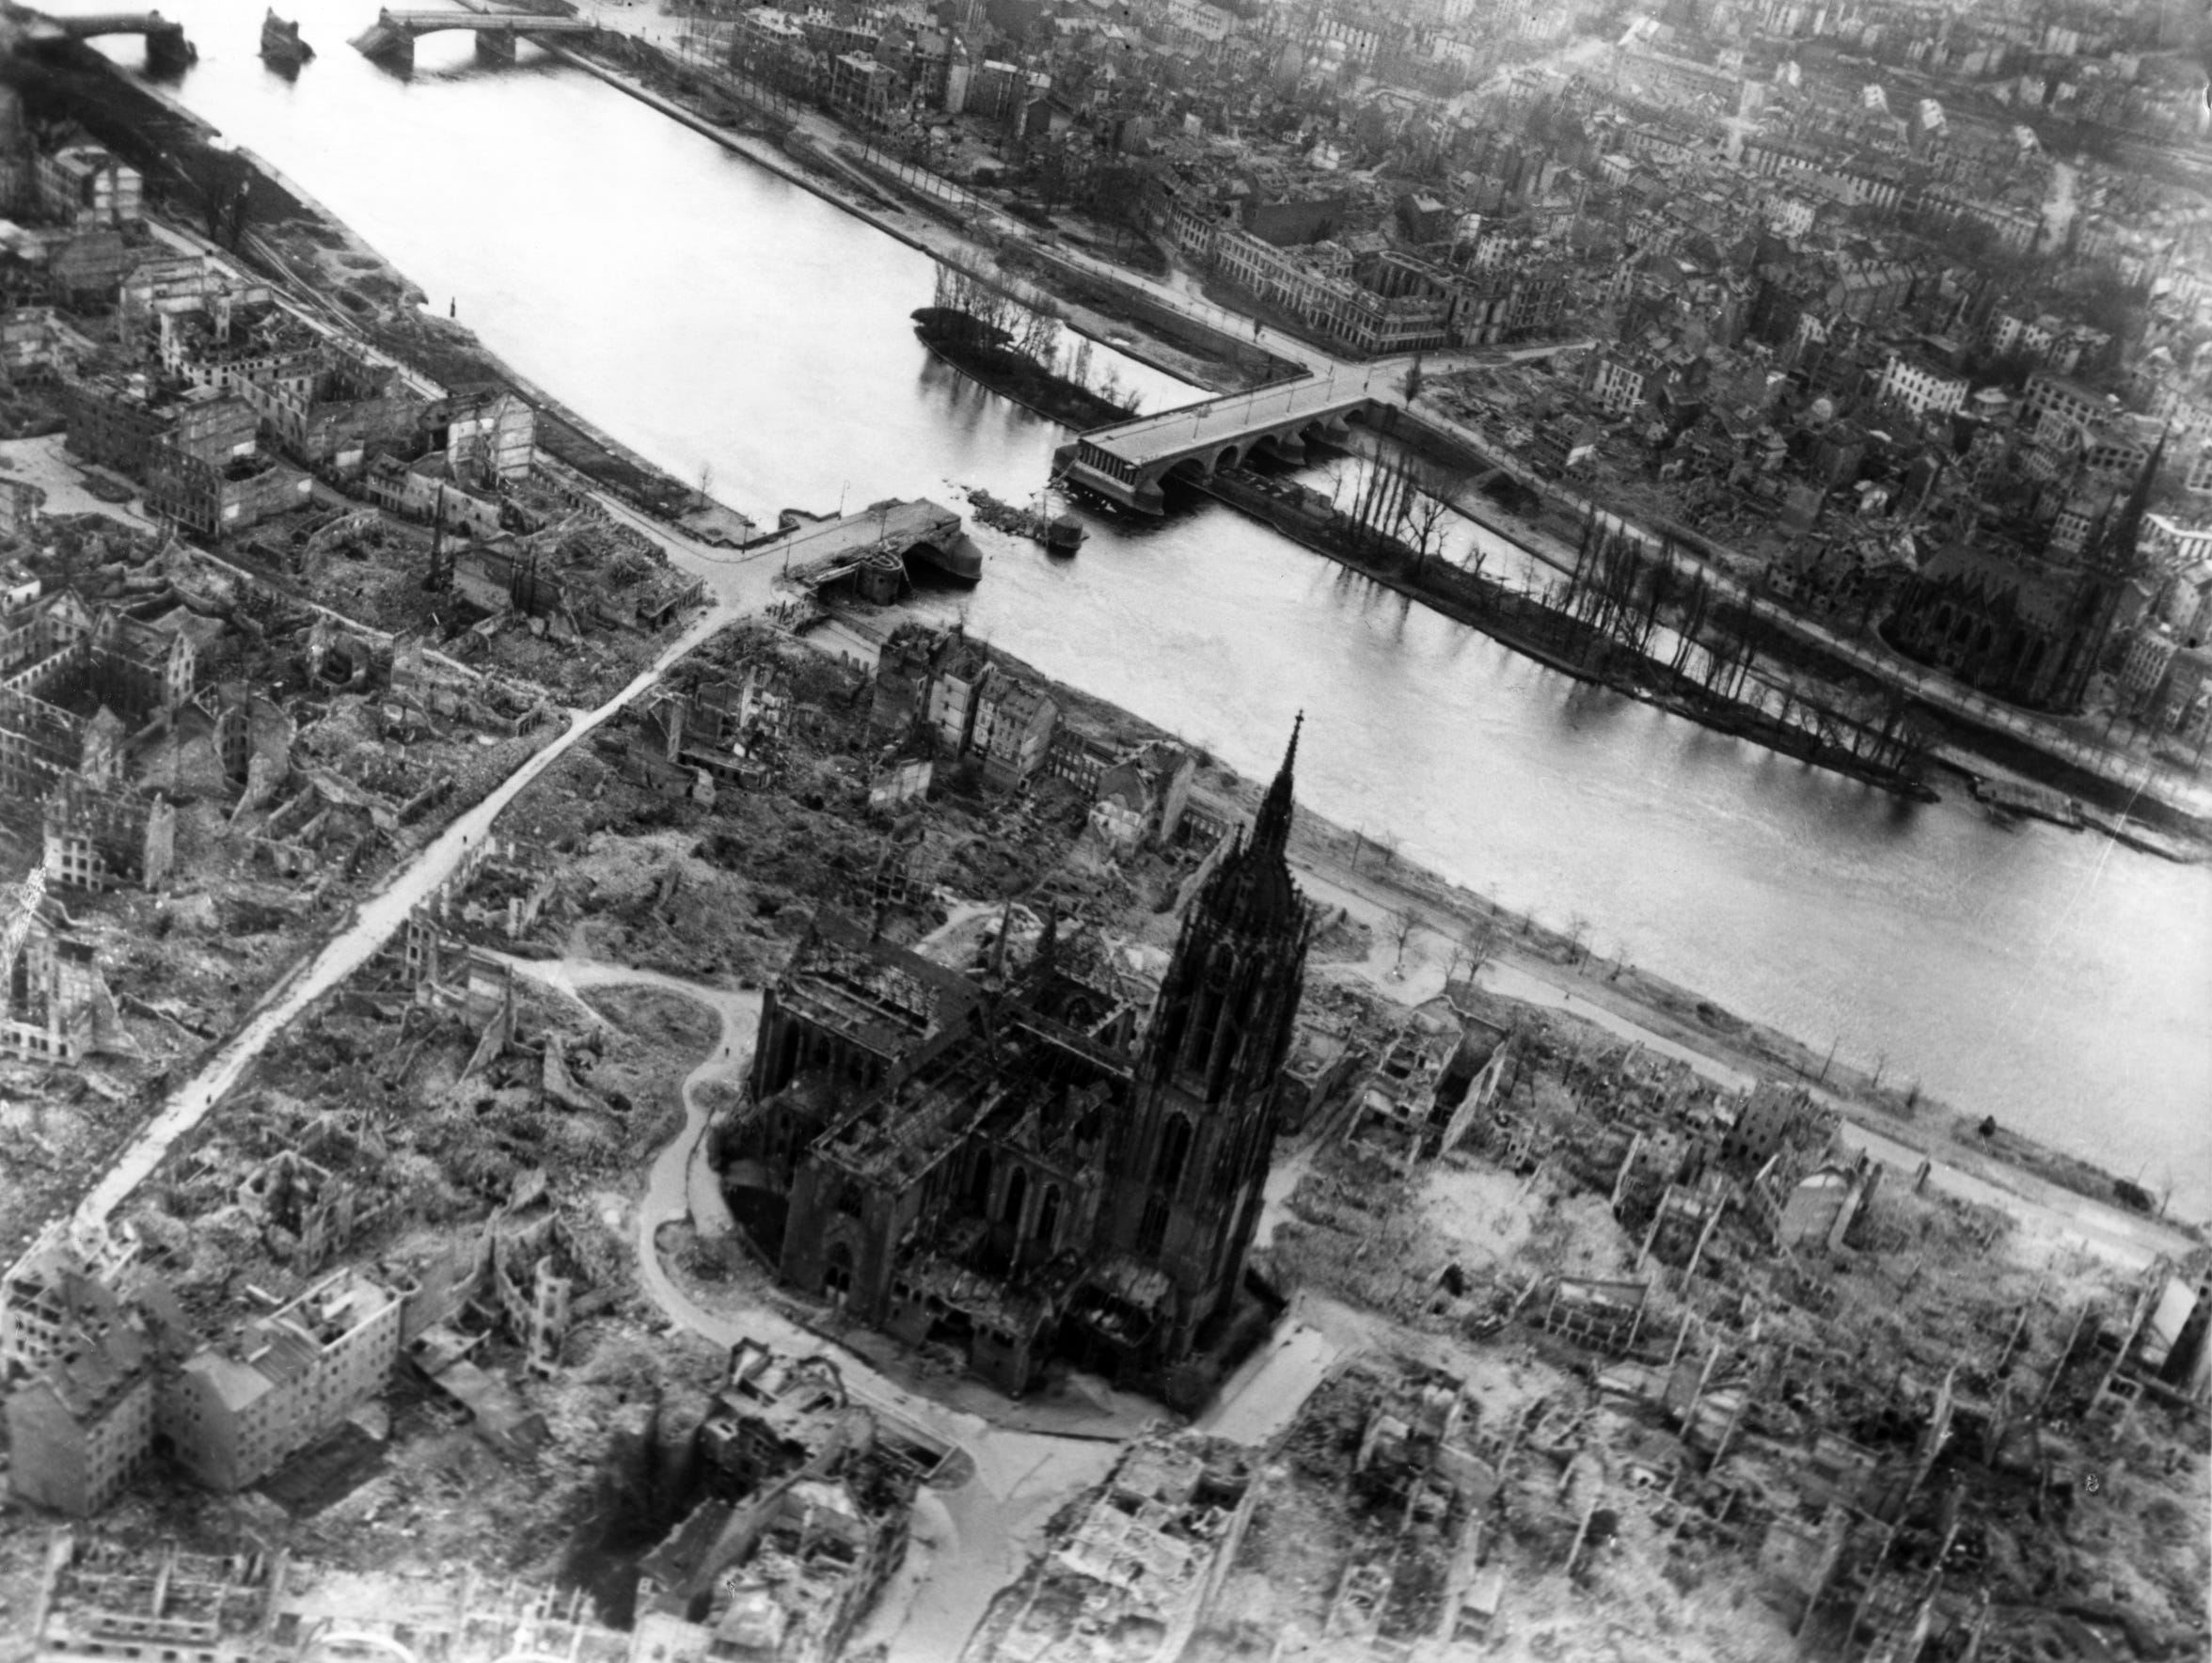 Bomb damage near the cathedral in Frankfurt, May 1945.